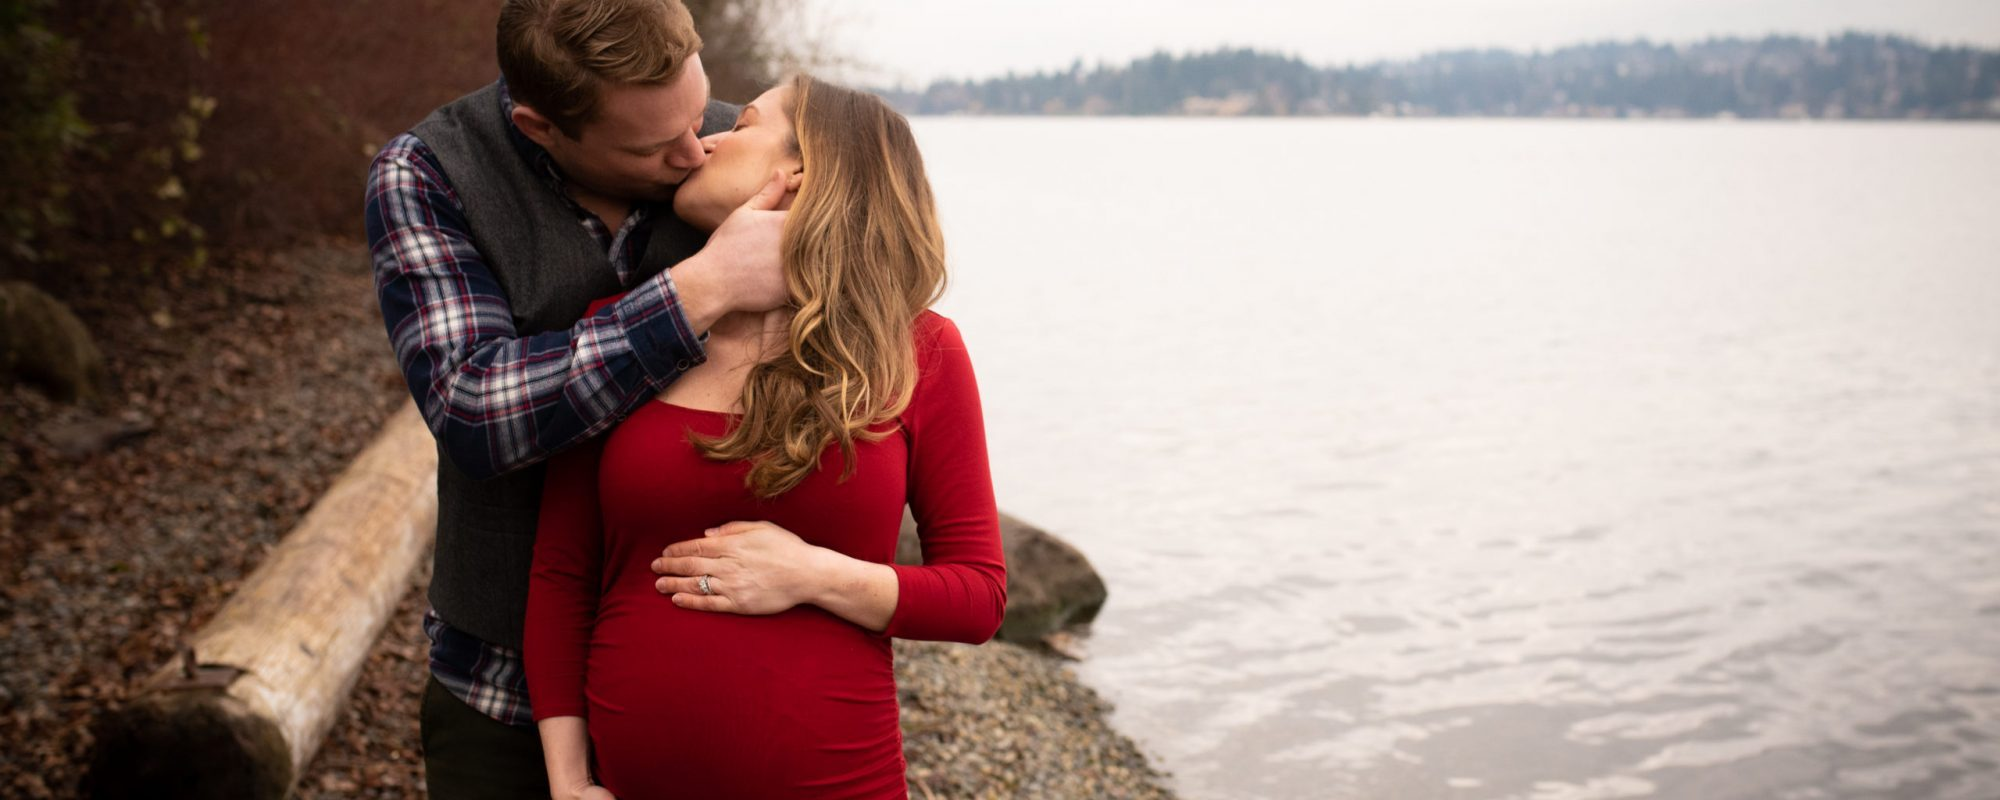 Husband and expecting wife passionately kissing beside a lake.